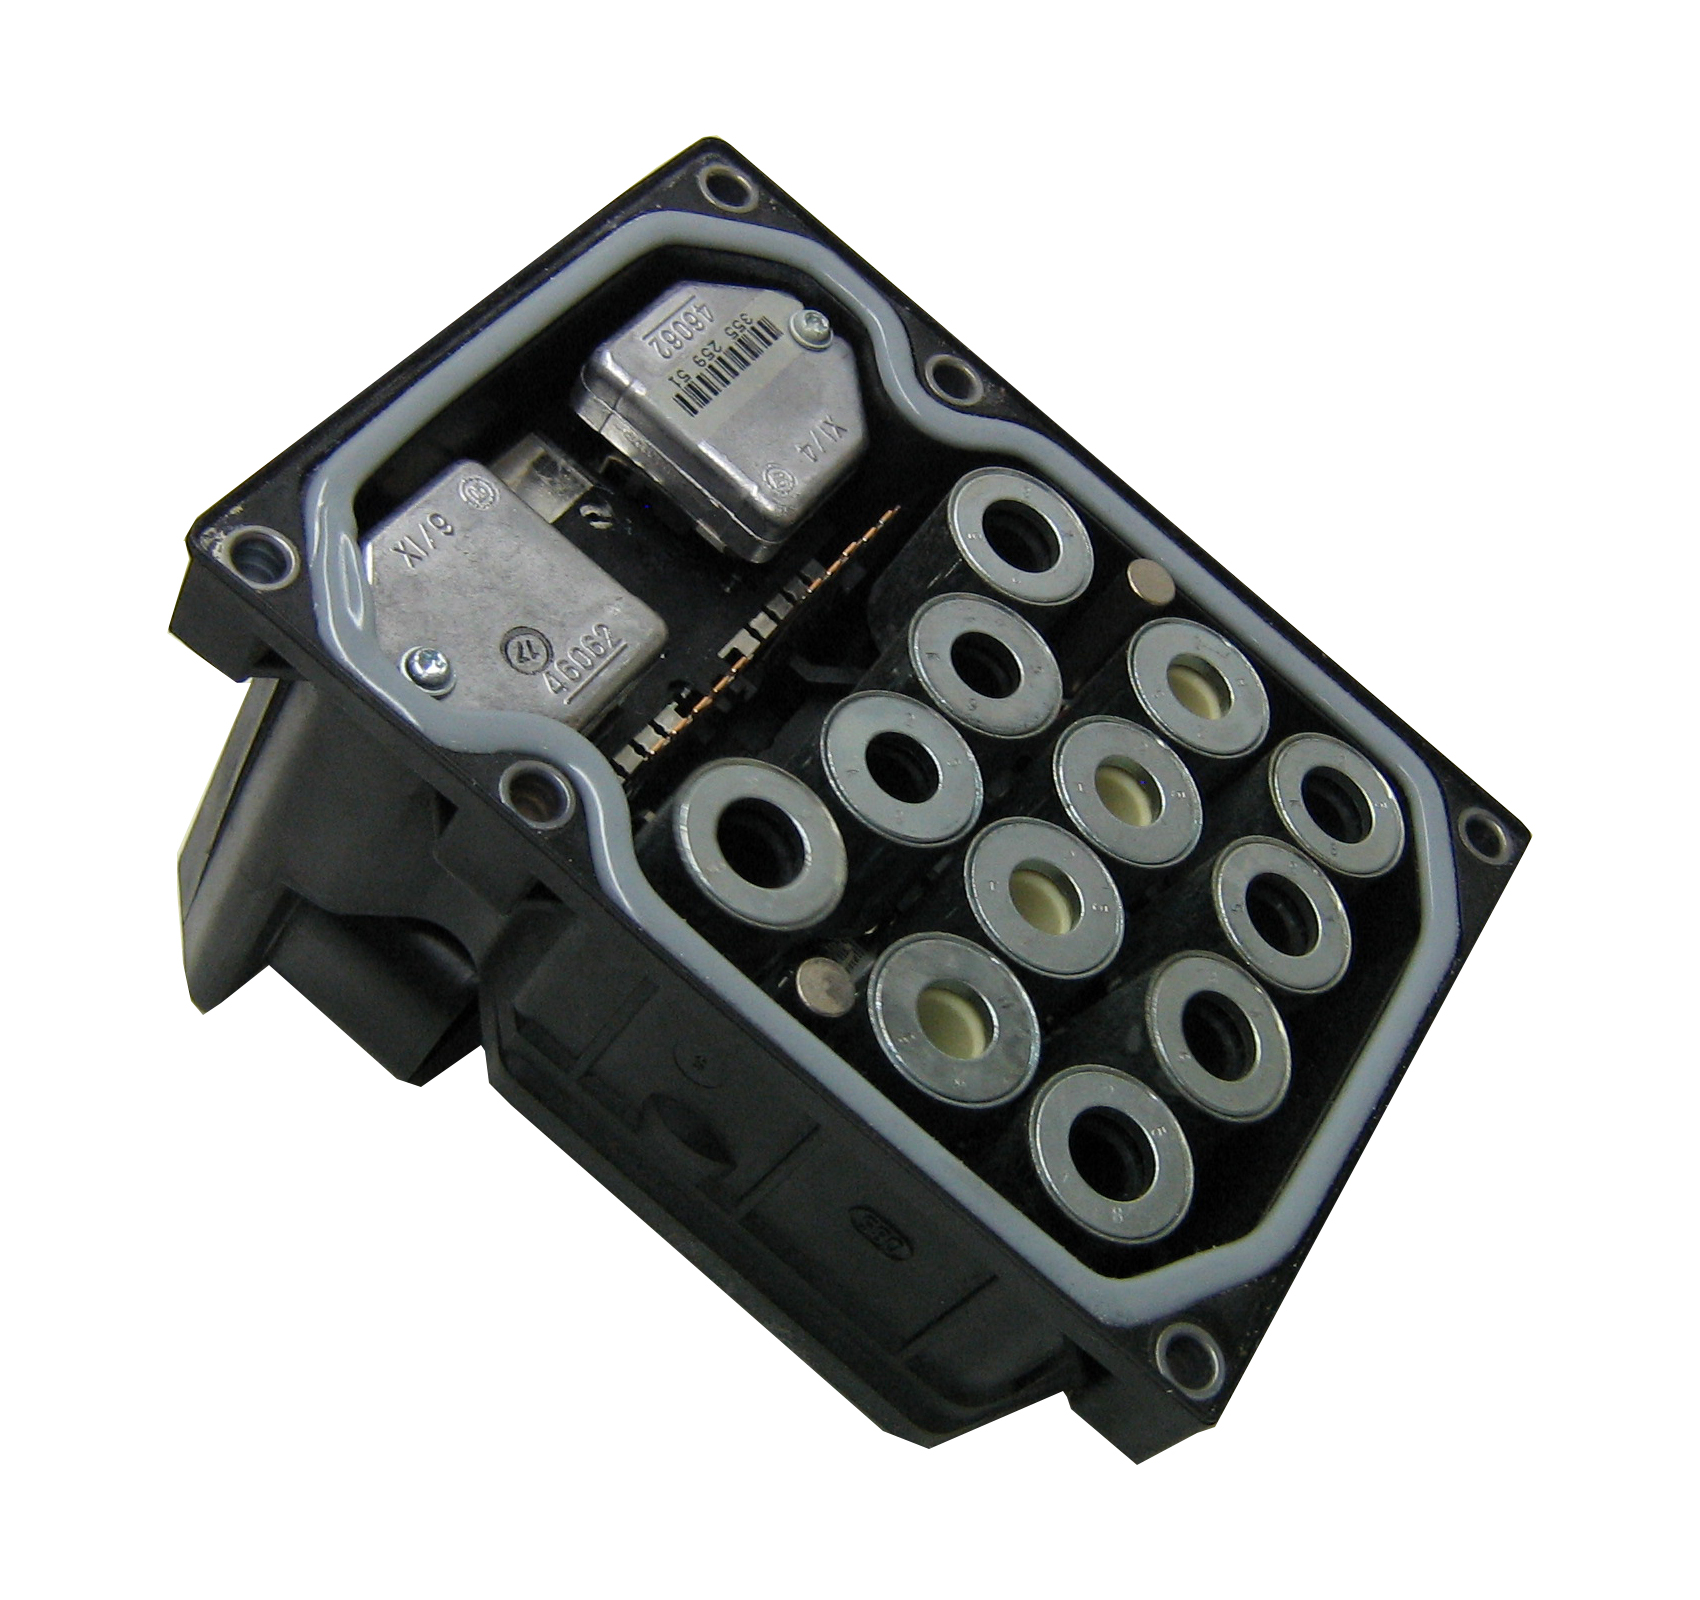 BMW ABS Control Module 0 265 950 067